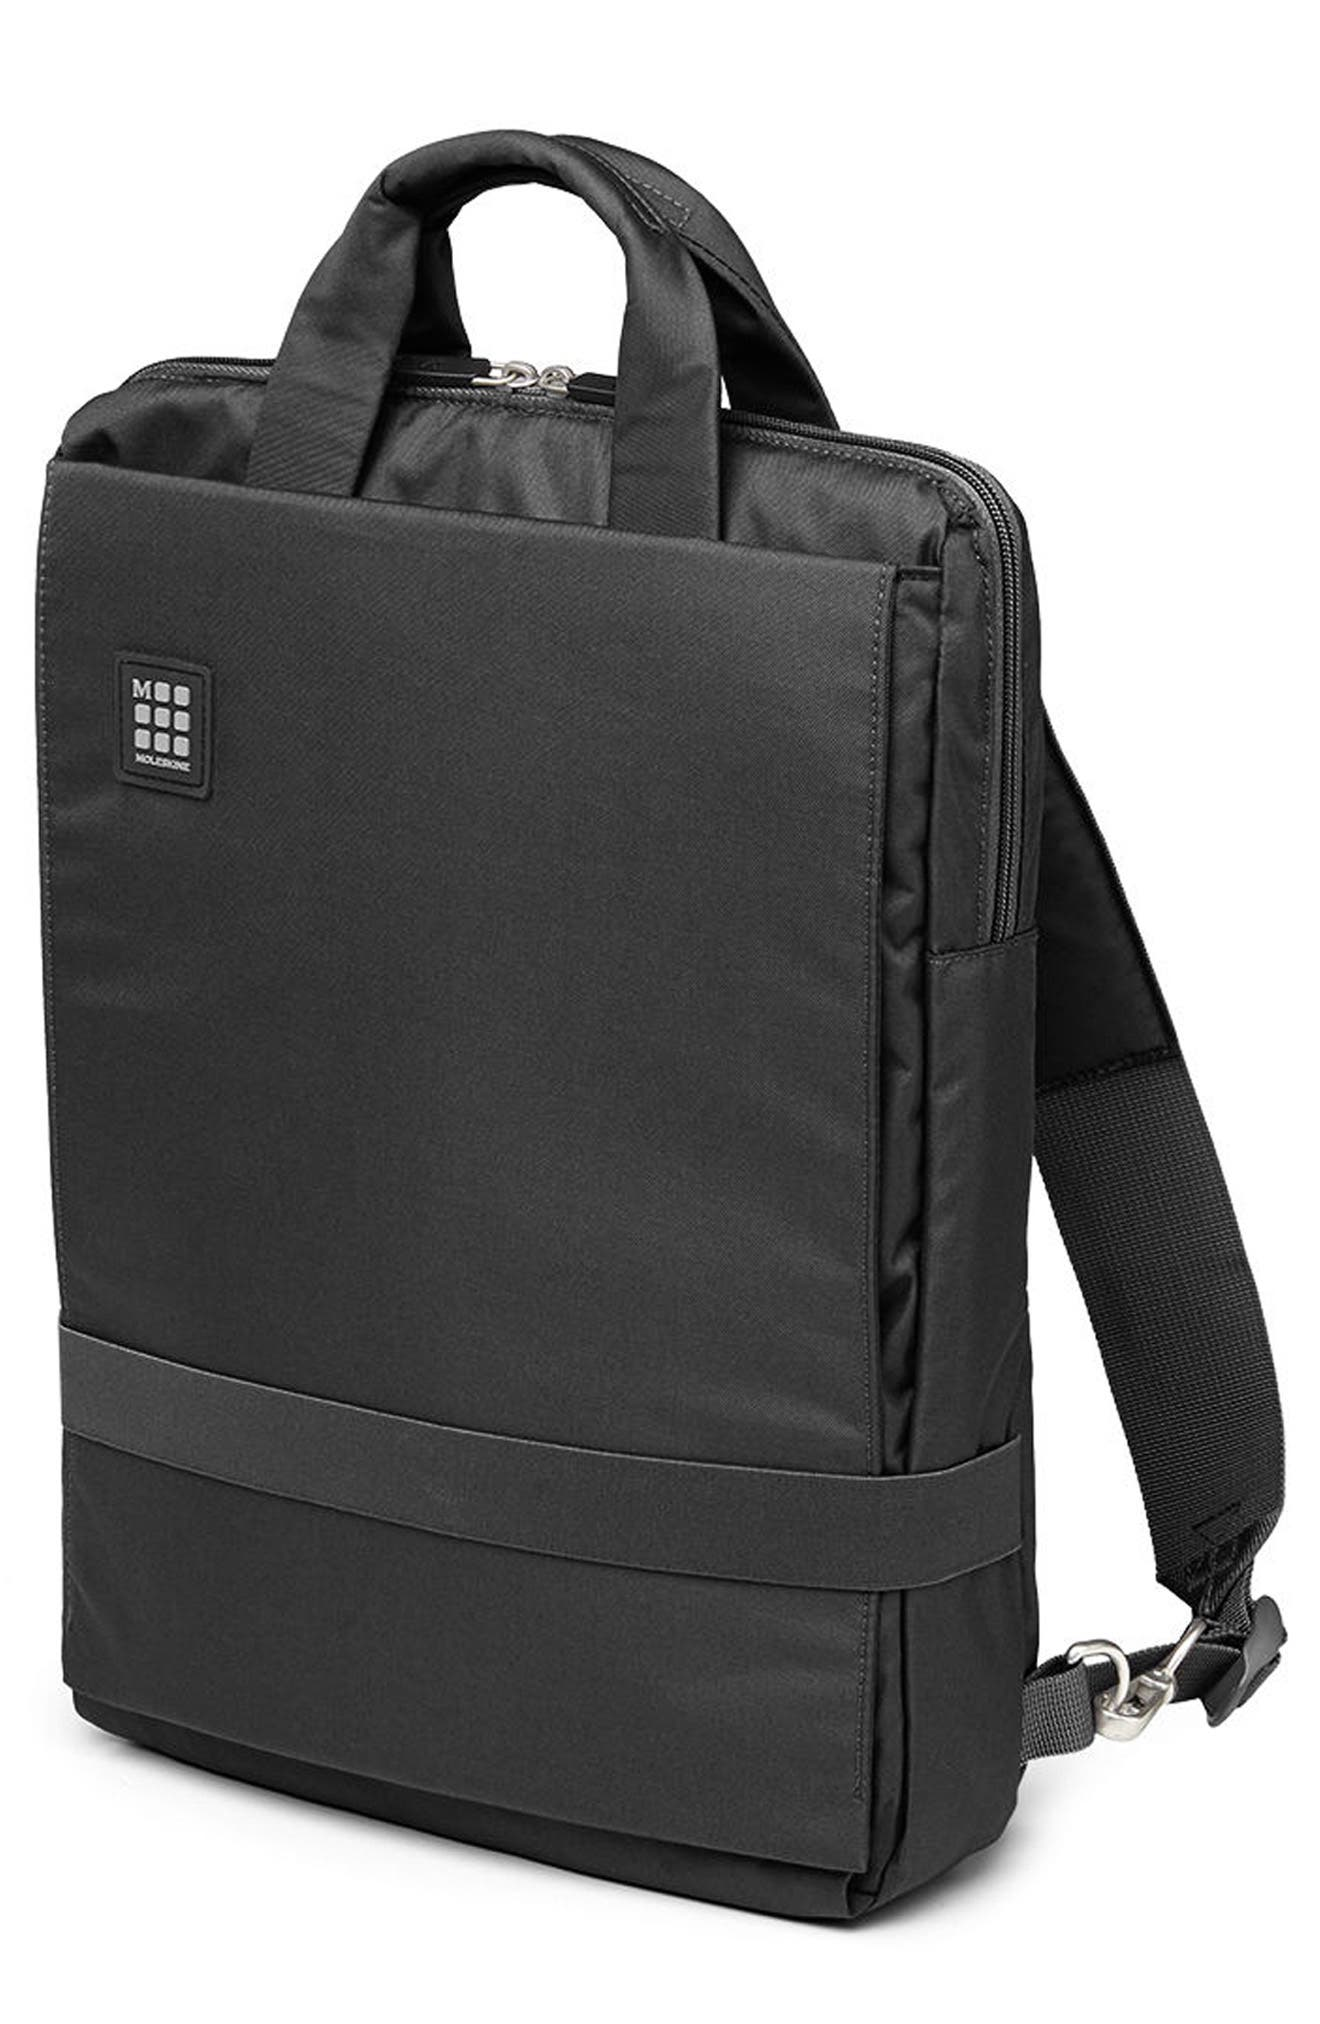 Vertical Device Bag,                         Main,                         color,